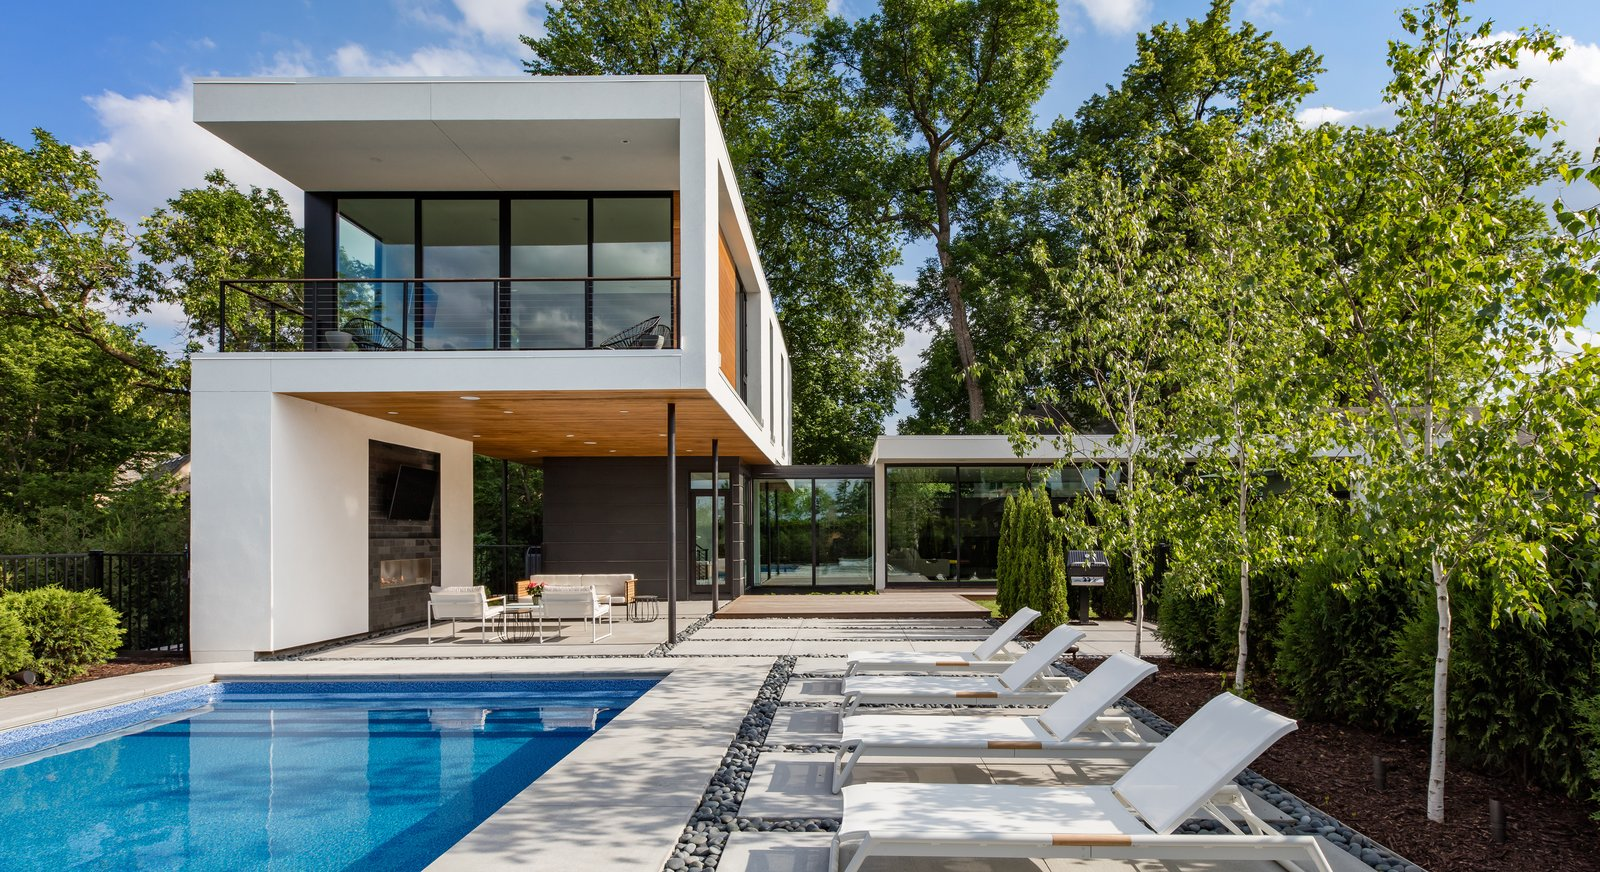 Swimming Pools, Tubs, Shower, Lap Pools, Tubs, Shower, Garden, Prefab Container Pools, Tubs, Shower, Back Yard, Concrete Patio, Porch, Deck, Pavers Patio, Porch, Deck, Stone Patio, Porch, Deck, Gas Burning Fireplace, and Outdoor  Calhoun Pavilions Residence by Peterssen/Keller Architecture